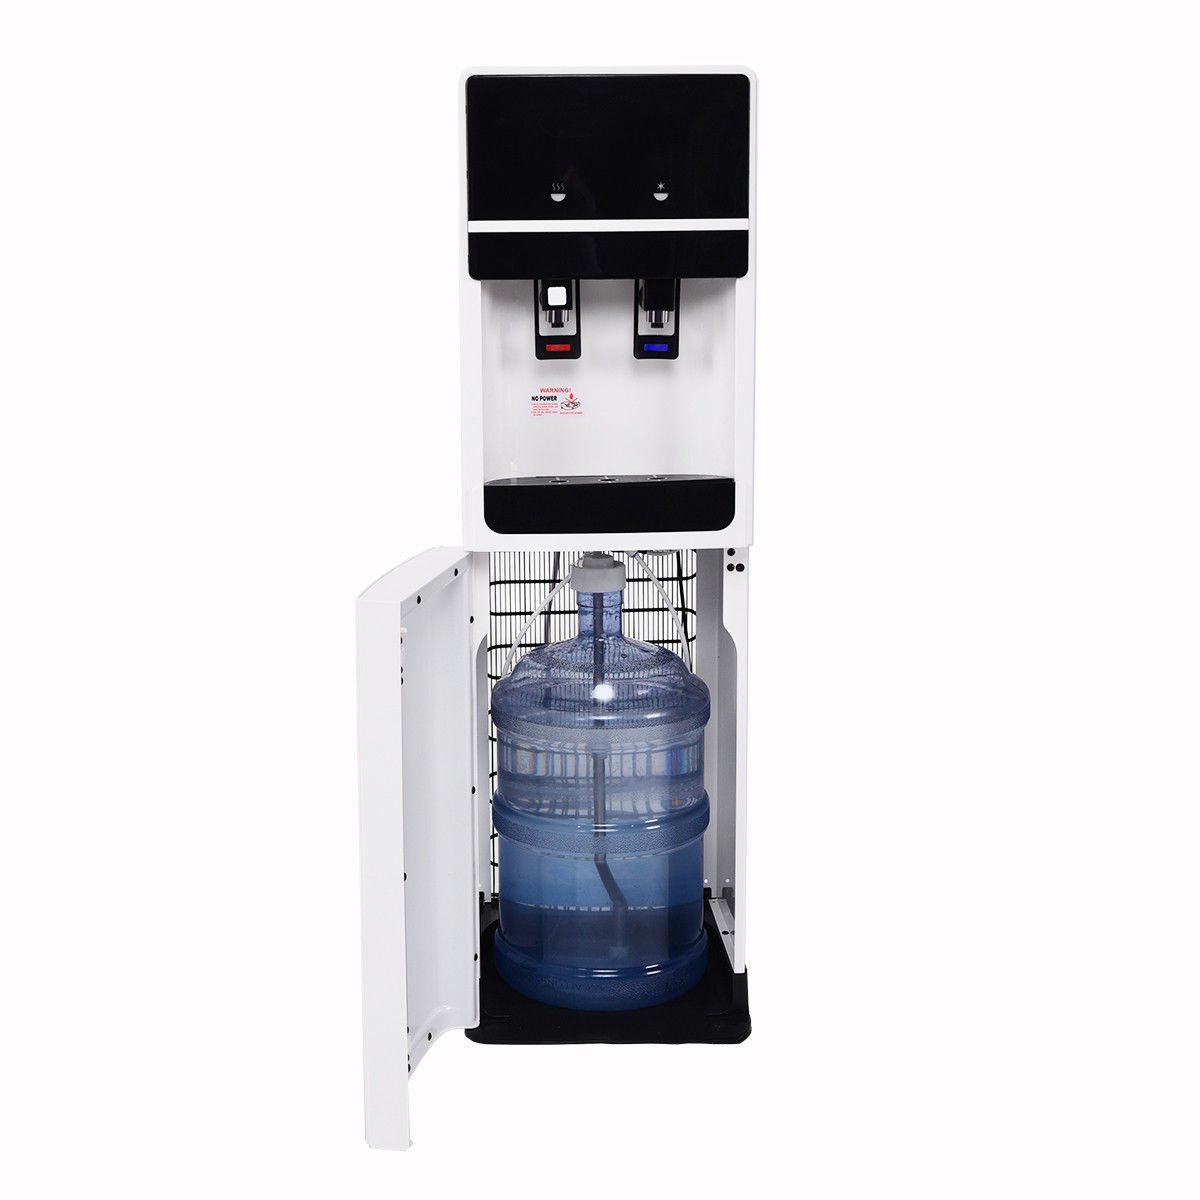 water obj cooler cgtrader models other countertops dispenser max fbx model countertop mtl vitapur electronics